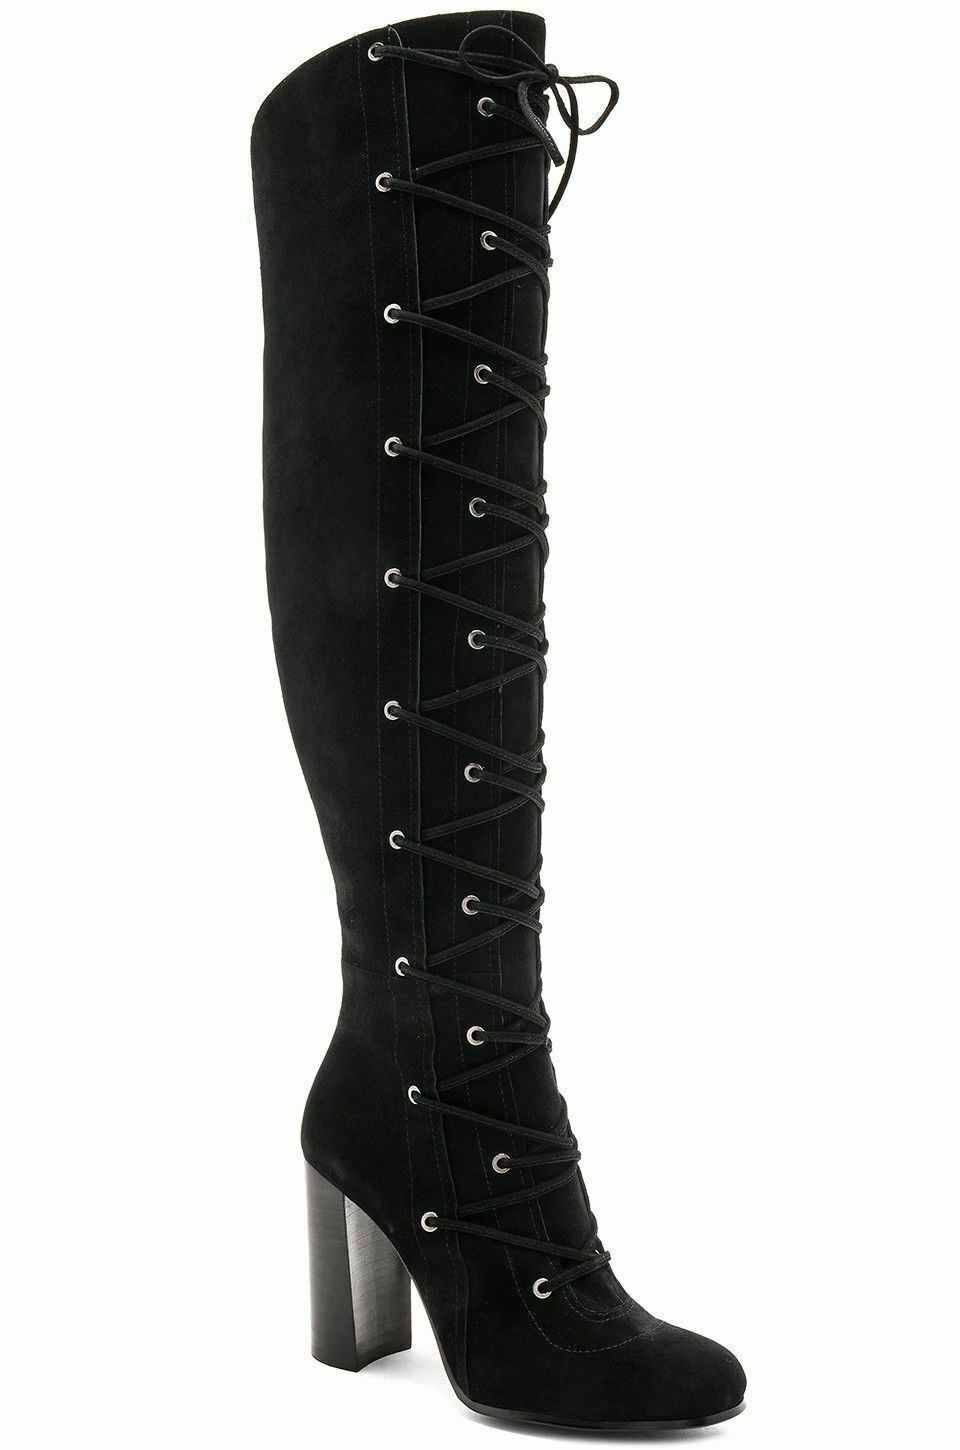 Vince Camuto Thanta Lace Up Tall Boots Black Over The Knee sz 8.5 new